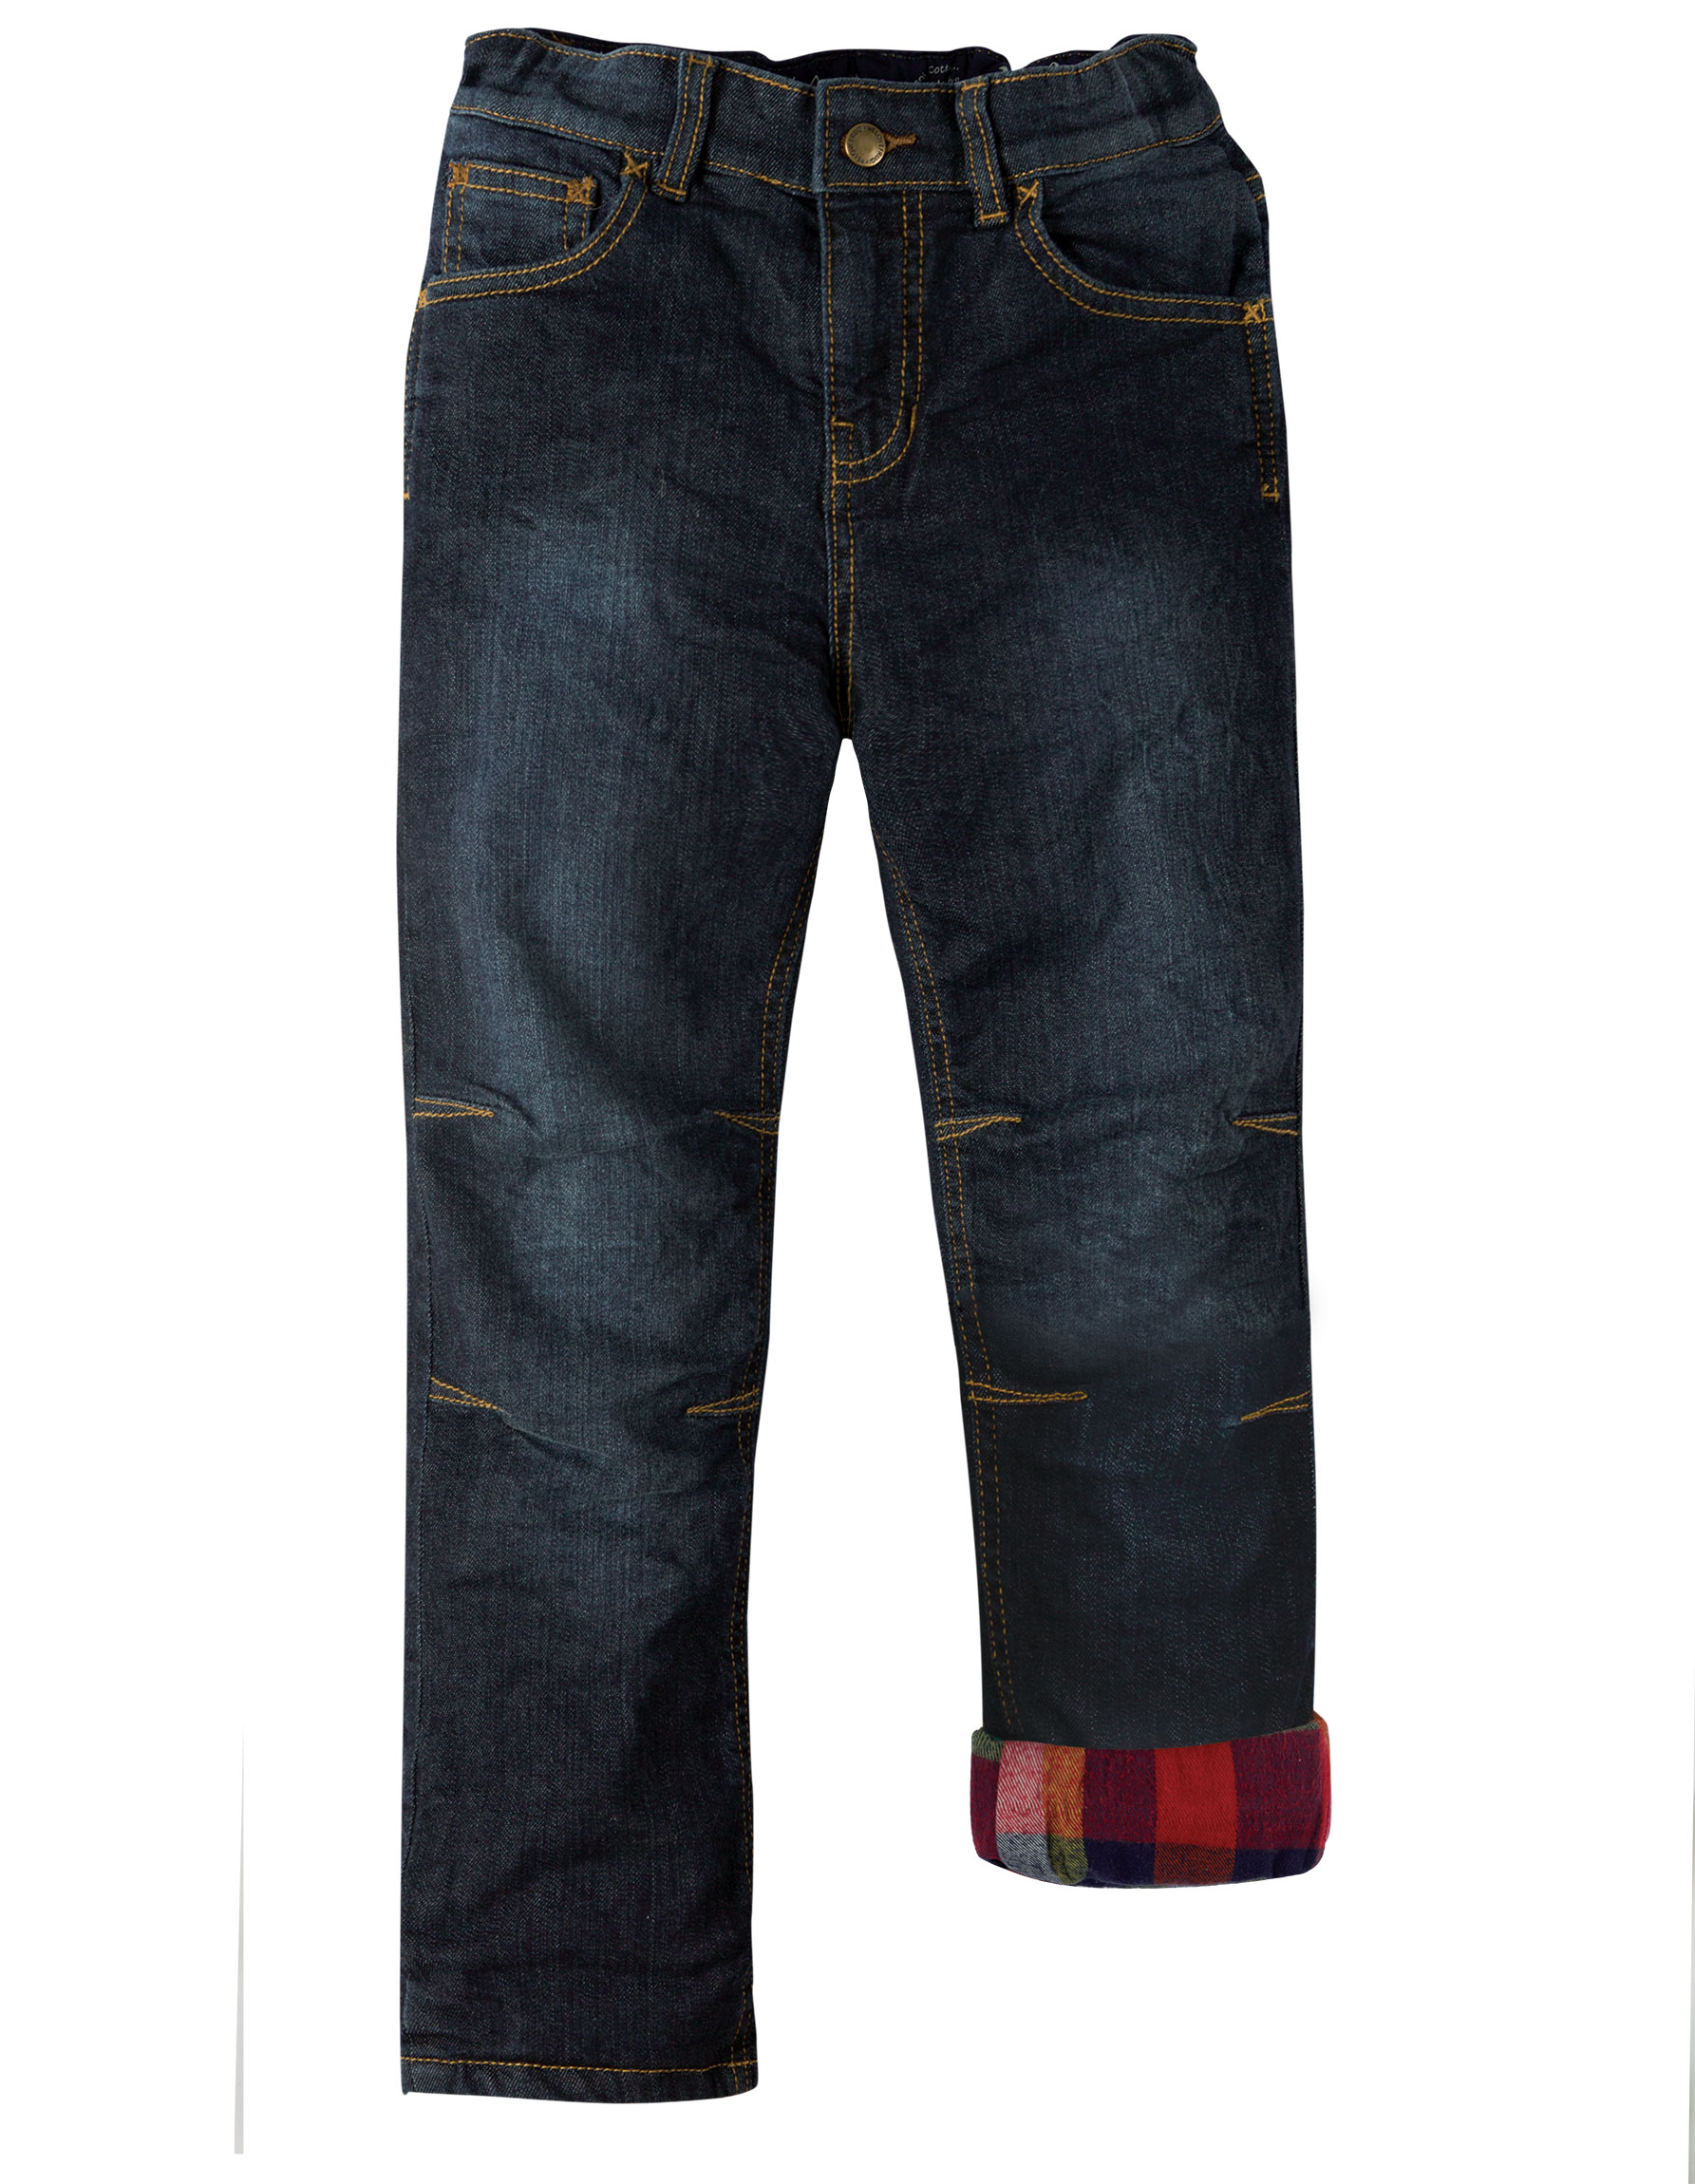 Frugi Lumberjack Lined Jeans, Dark Wash Denim